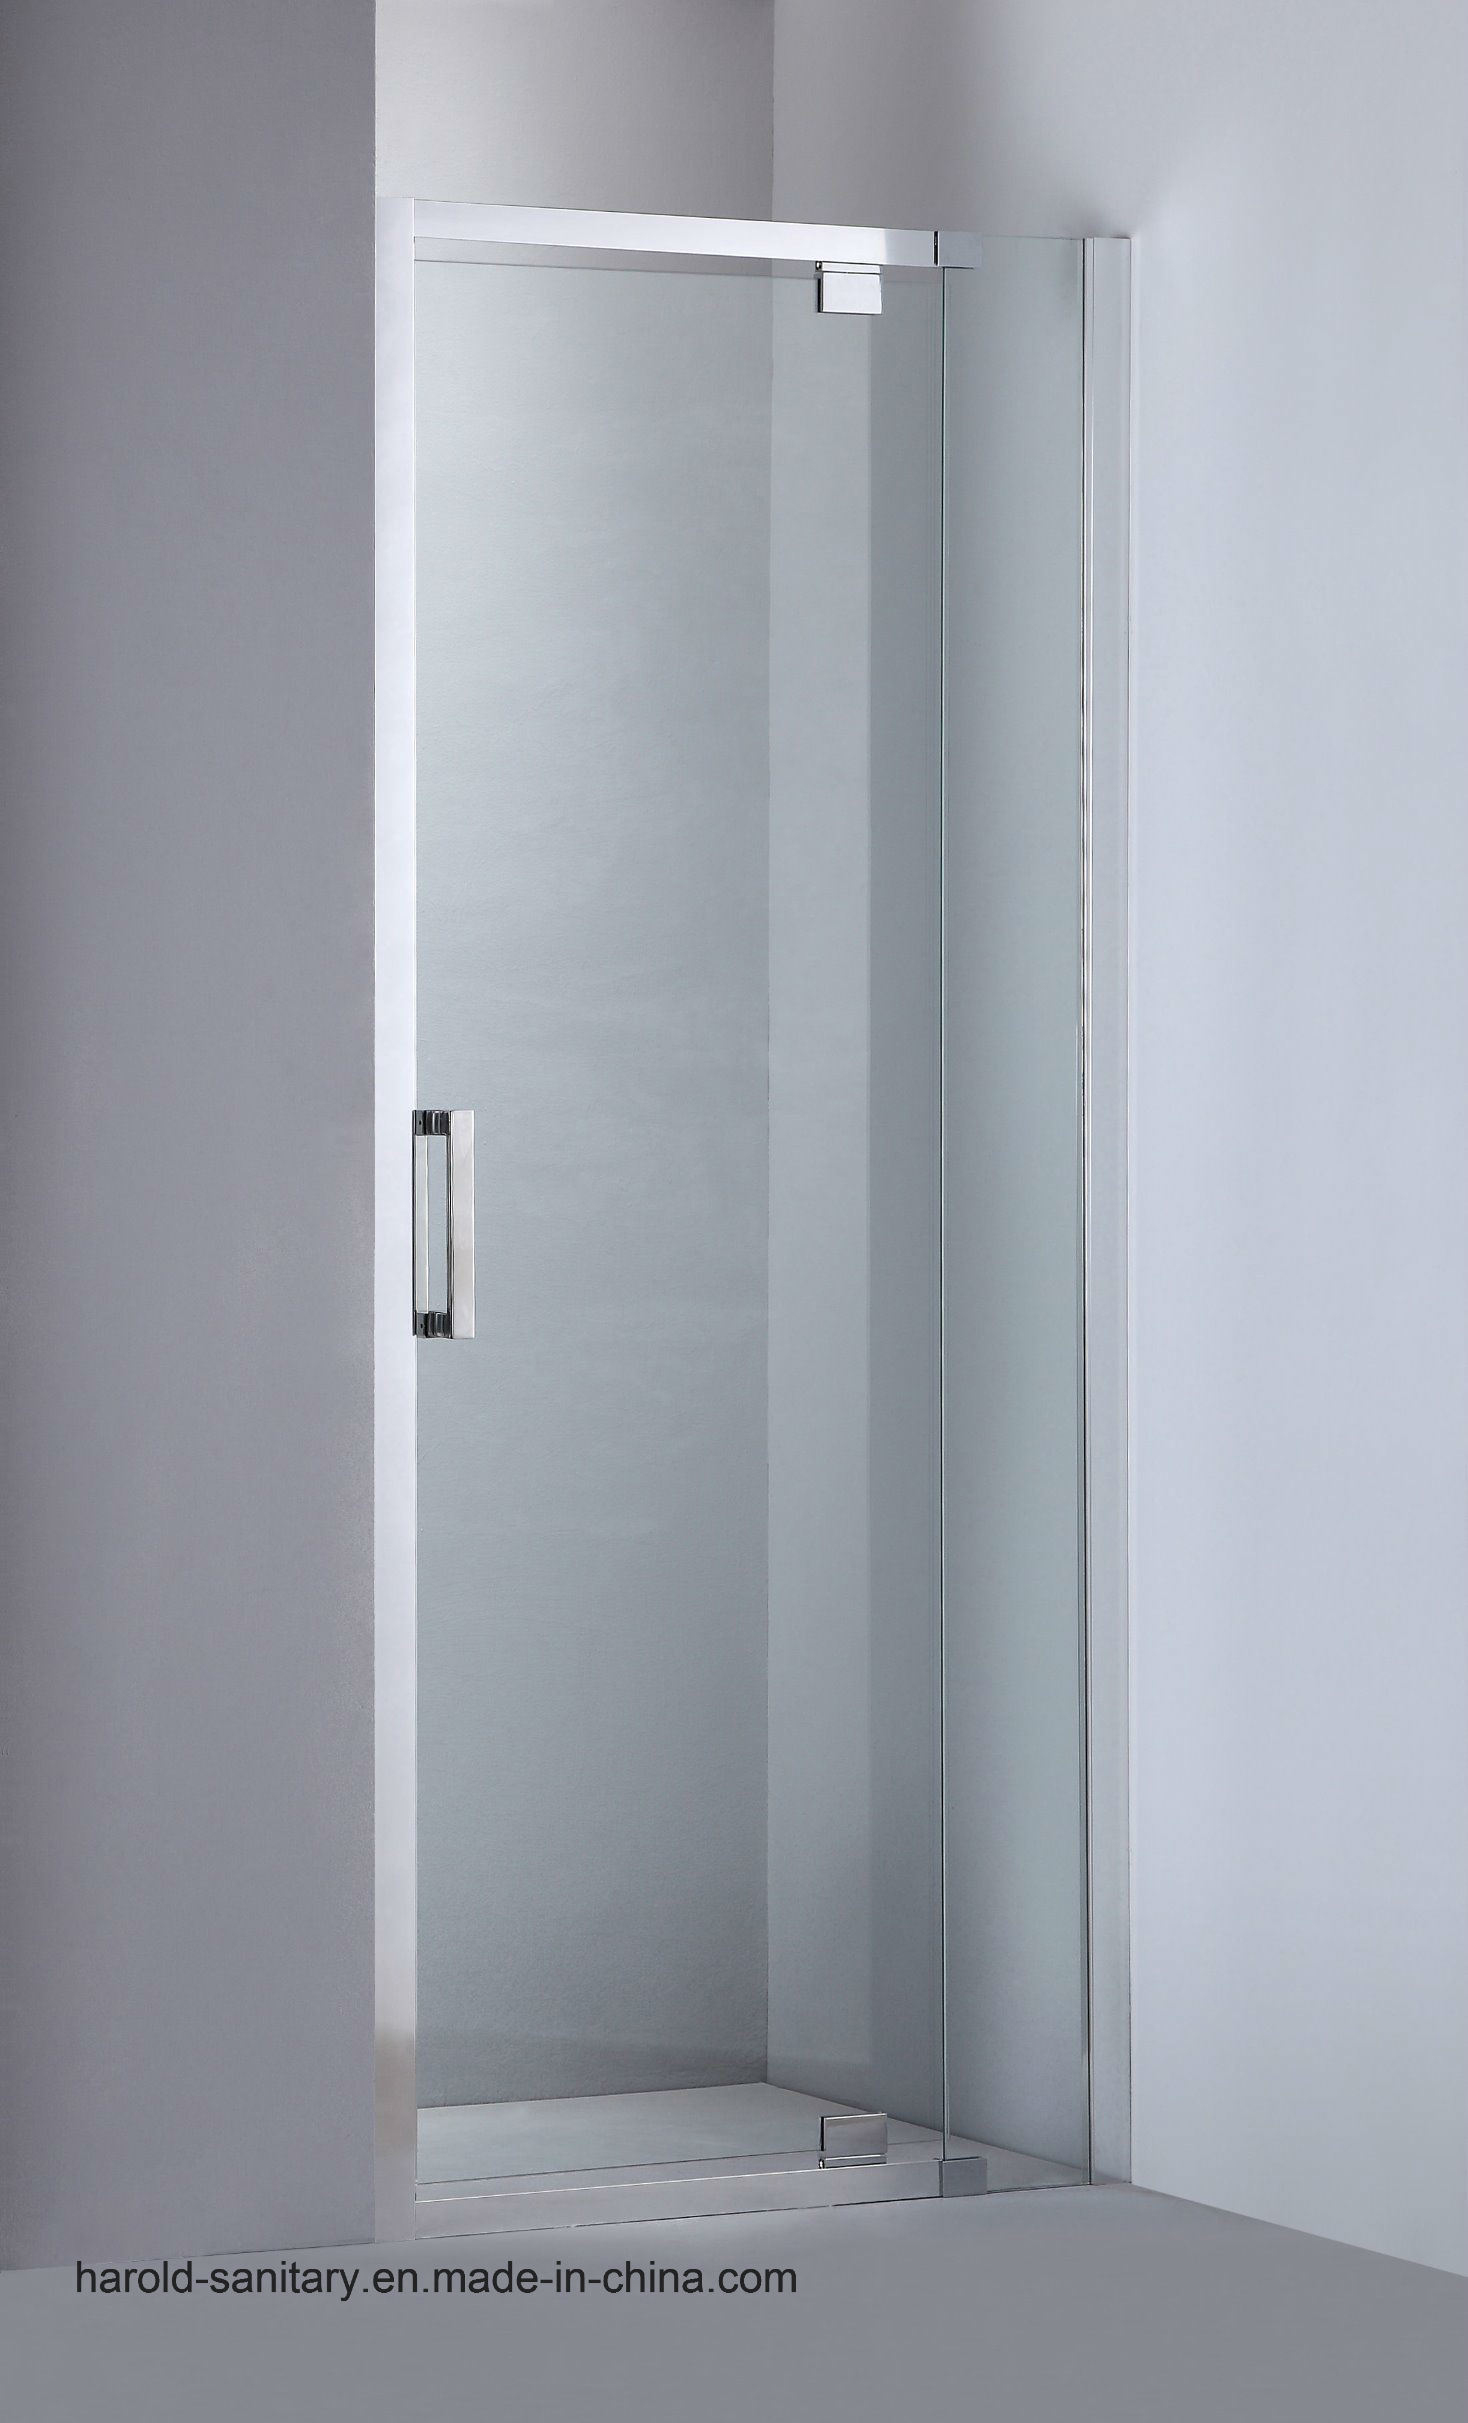 China 6mm Framed Tempered Glass Shower Screen - China Shower ...